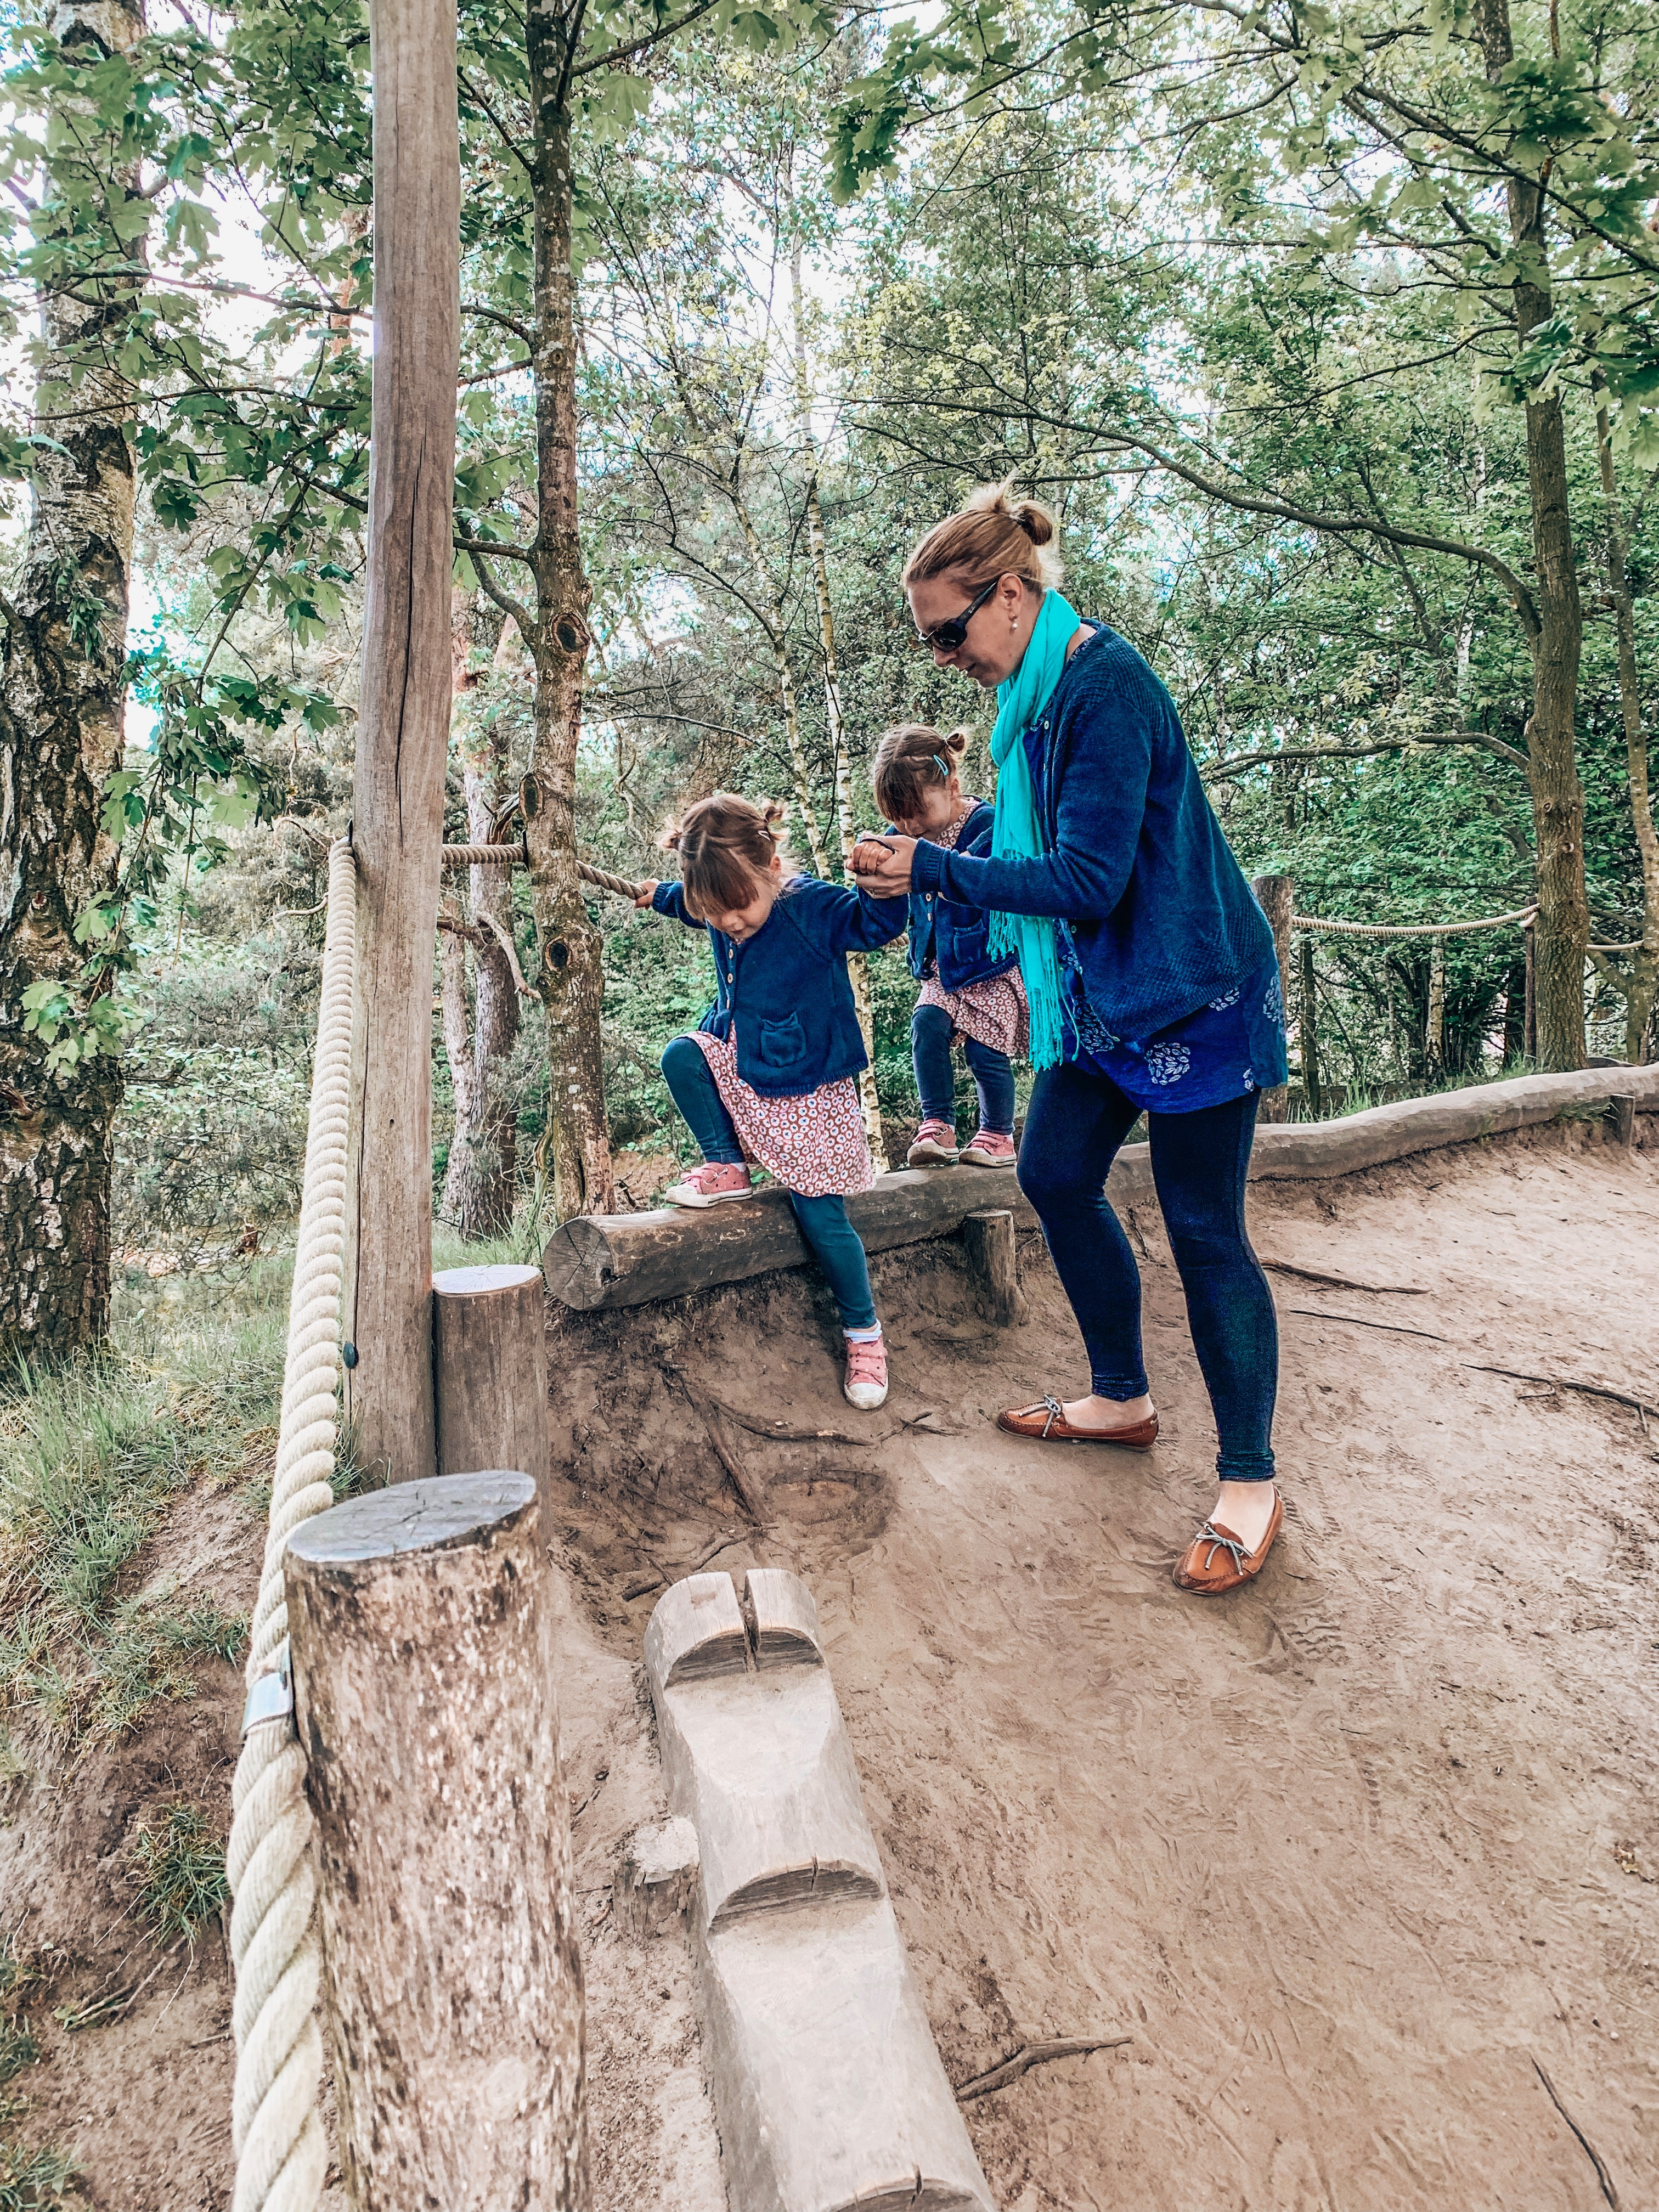 Trim trail at Beekse Bergen safari park. Places to visit in Holland